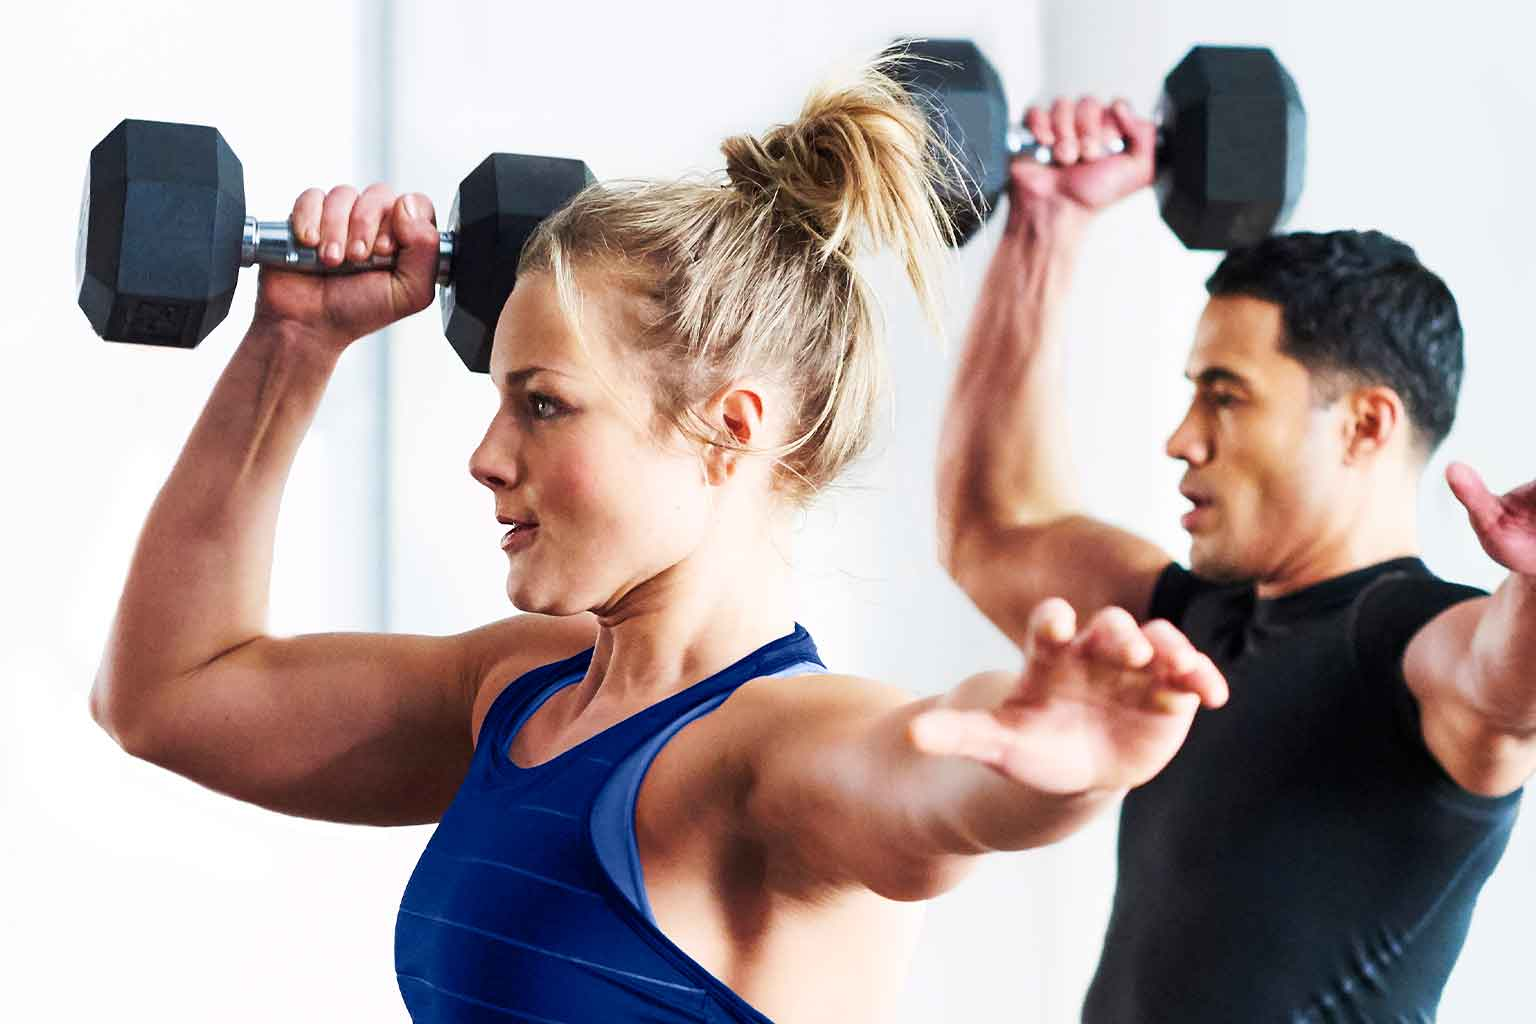 A woman and a man in workout attire raising a dumbbell with the opposite hand reaching out for balance.